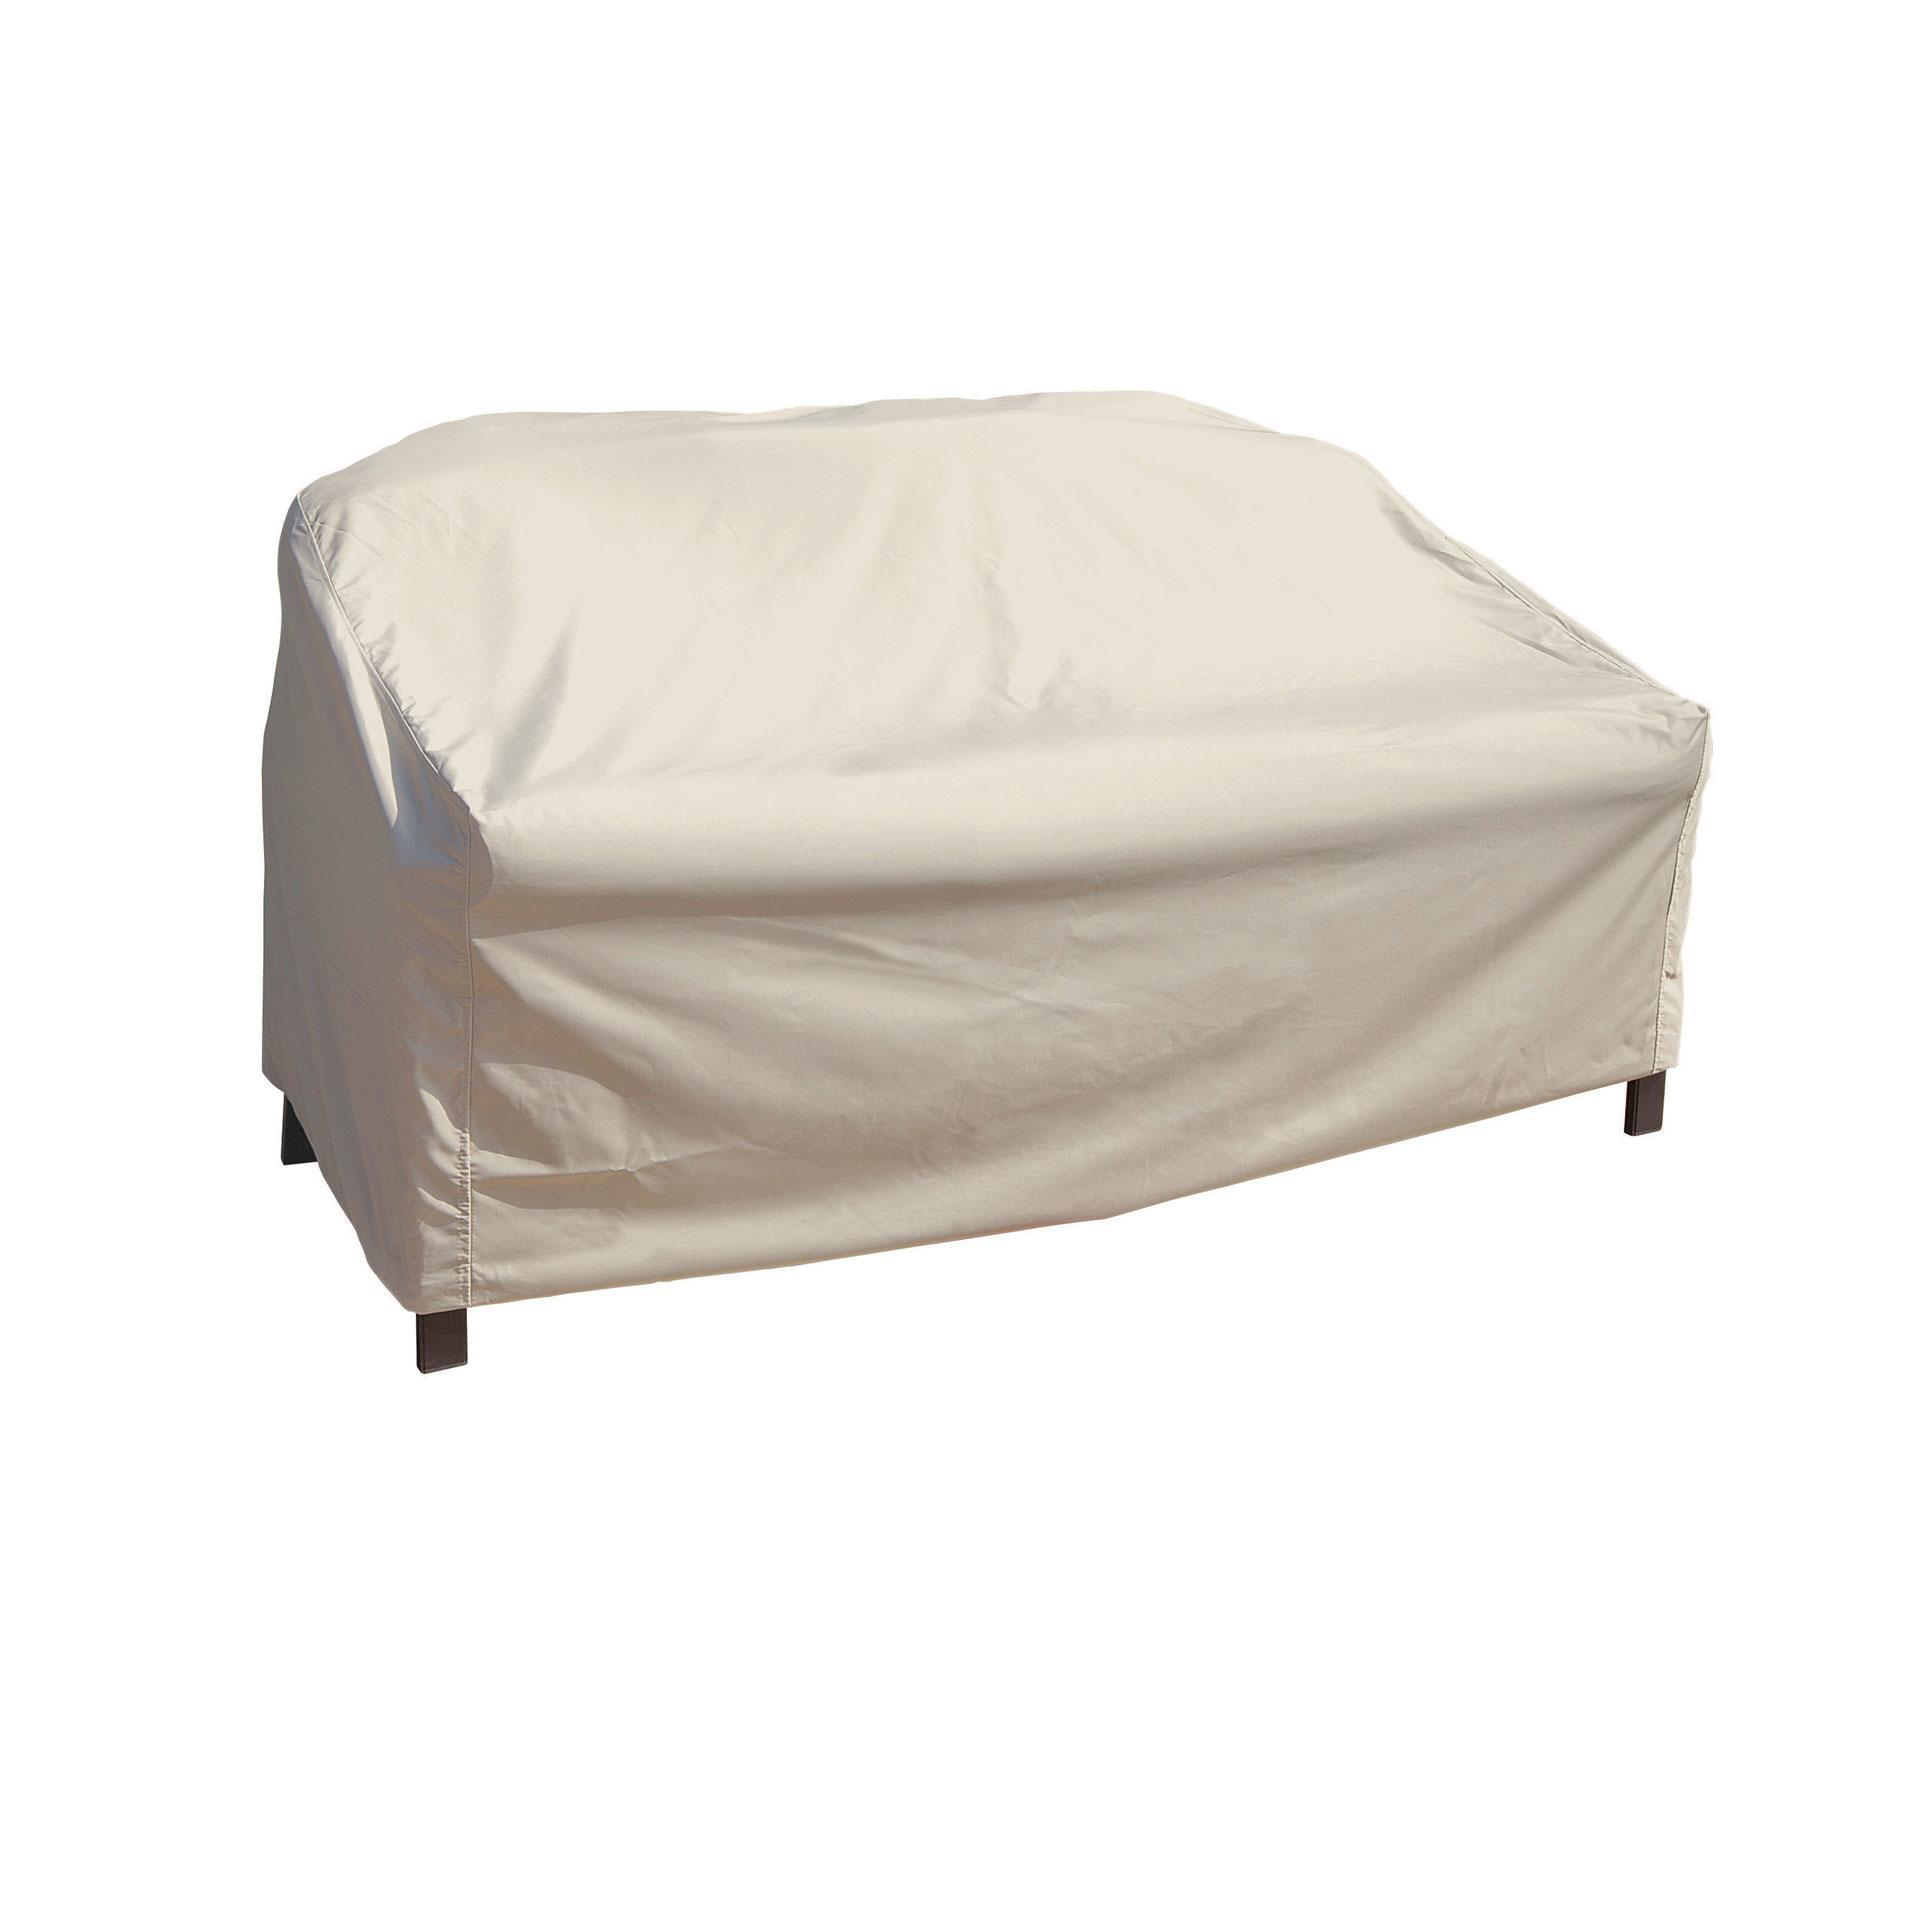 outdoor furniture covers curved sofa modular connectors treasure garden x large loveseat or